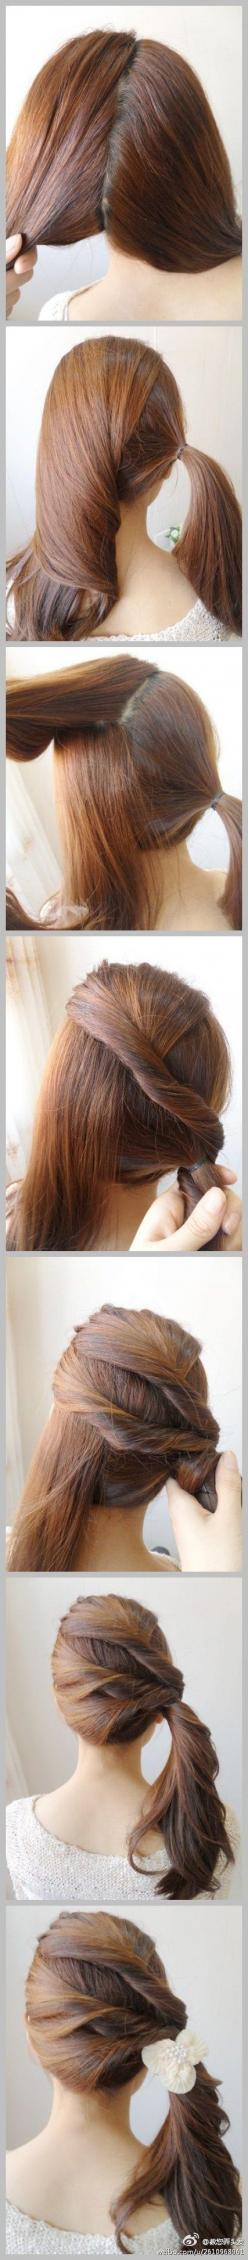 nice braid alternative: Pony Tail, Idea, Make Up, Hairstyles, Hairdos, Hair Styles, Makeup, Hair Twist, Side Ponytails